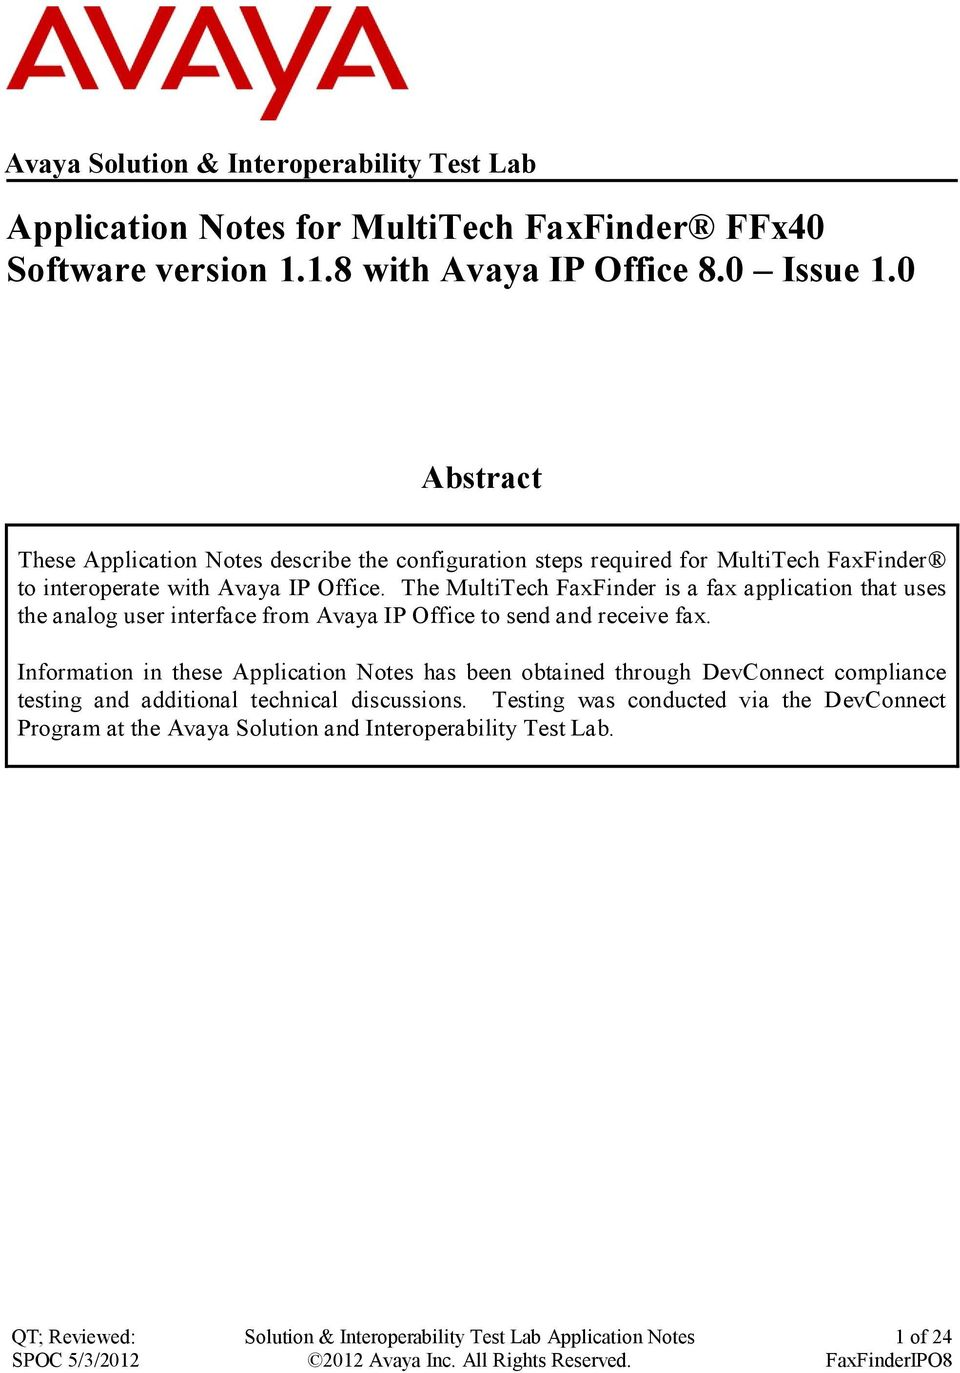 The MultiTech FaxFinder is a fax application that uses the analog user interface from Avaya IP Office to send and receive fax.